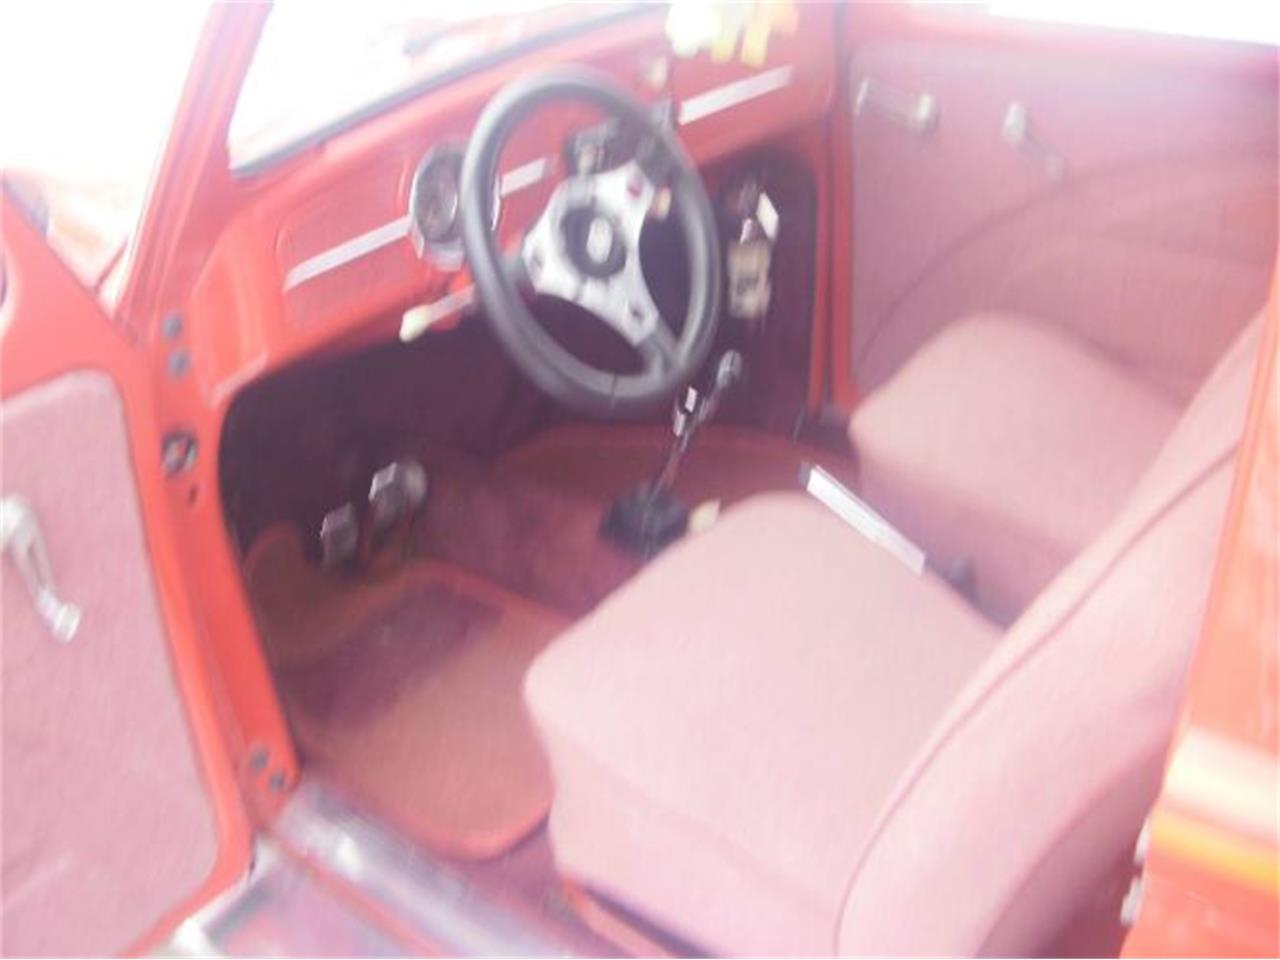 1959 Volkswagen Beetle for sale in Cadillac, MI – photo 2